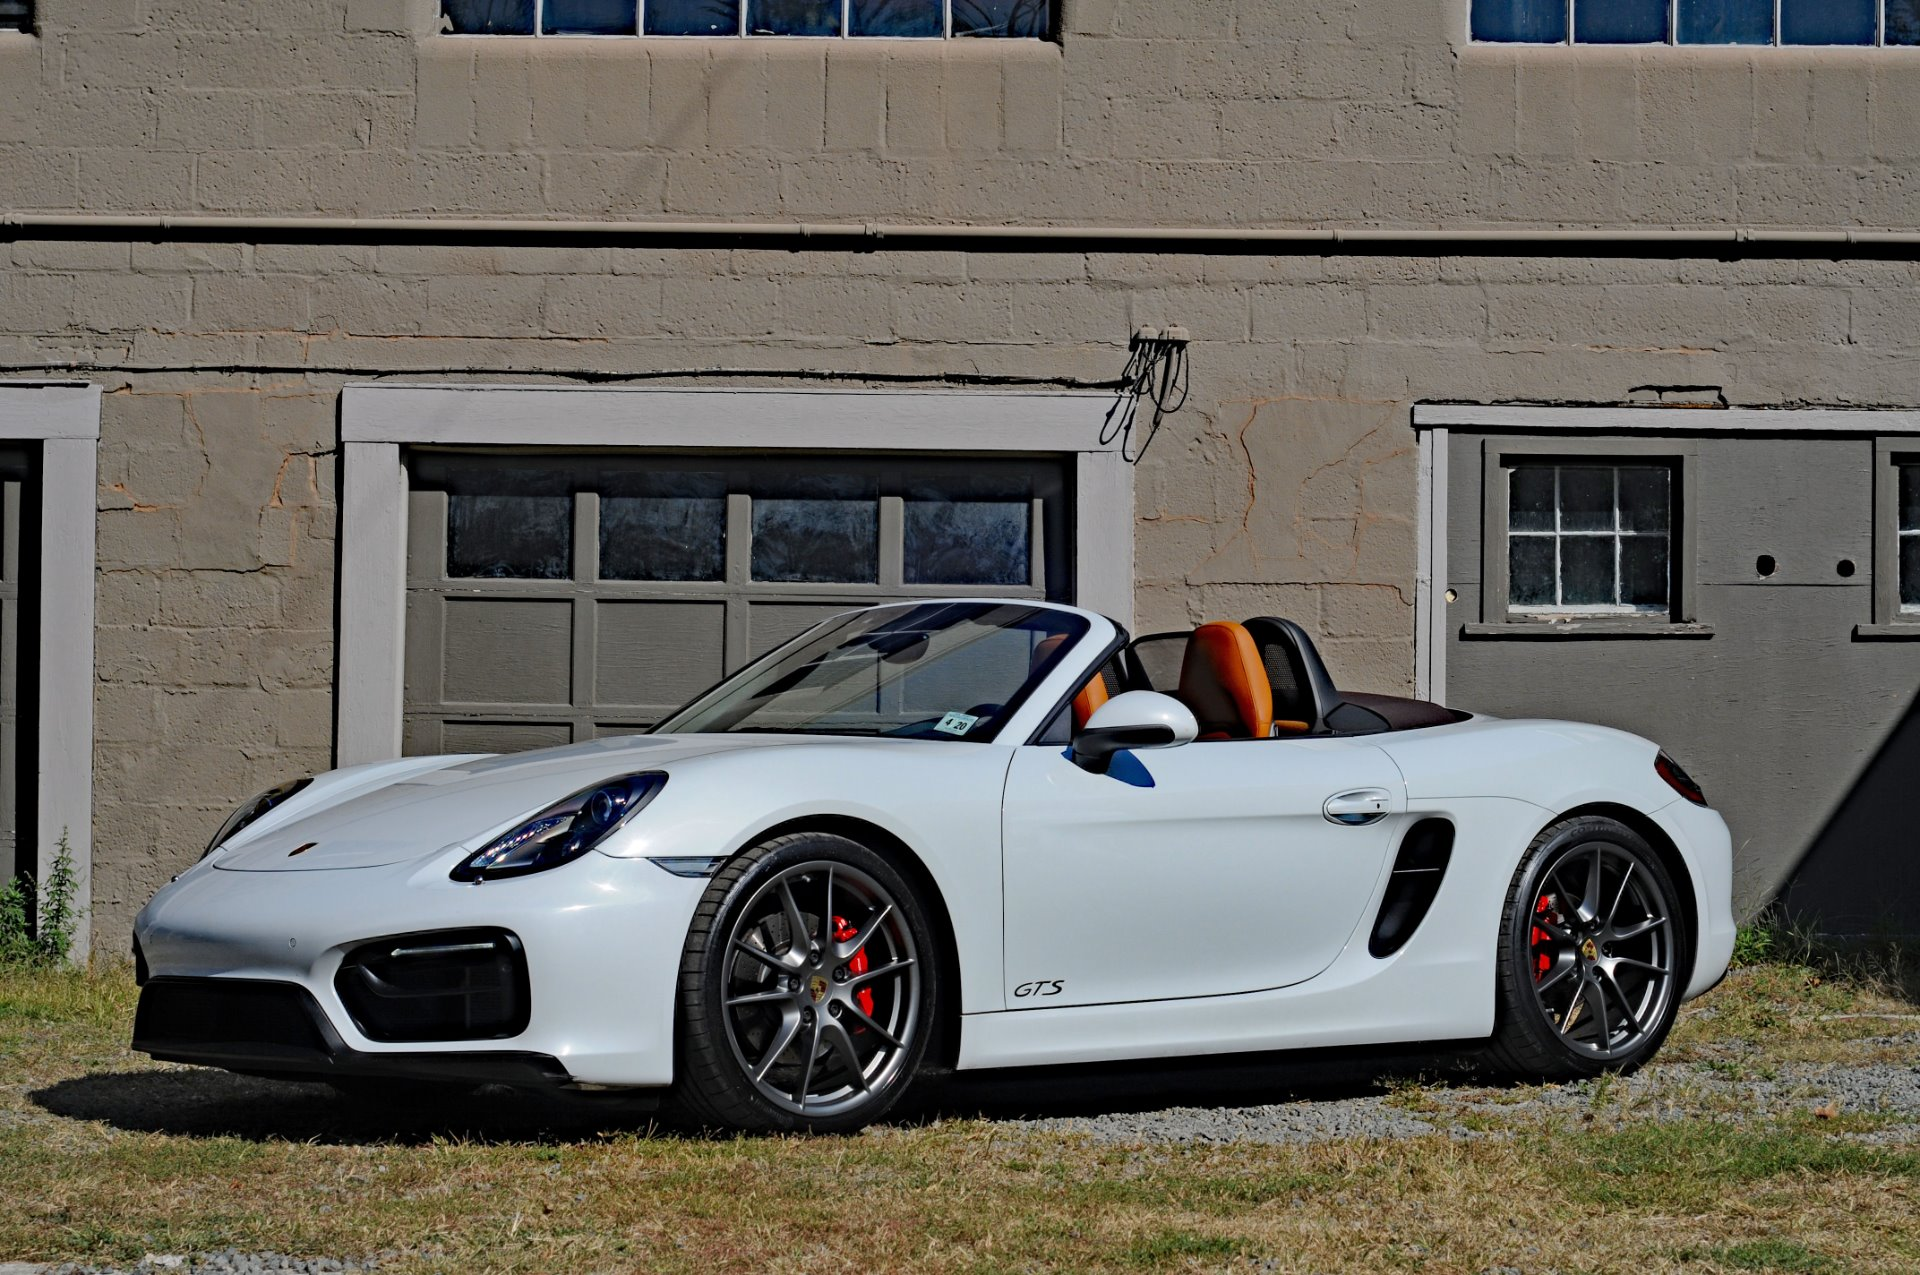 2015 porsche boxster gts gts stock 2366 for sale near peapack nj nj porsche dealer. Black Bedroom Furniture Sets. Home Design Ideas